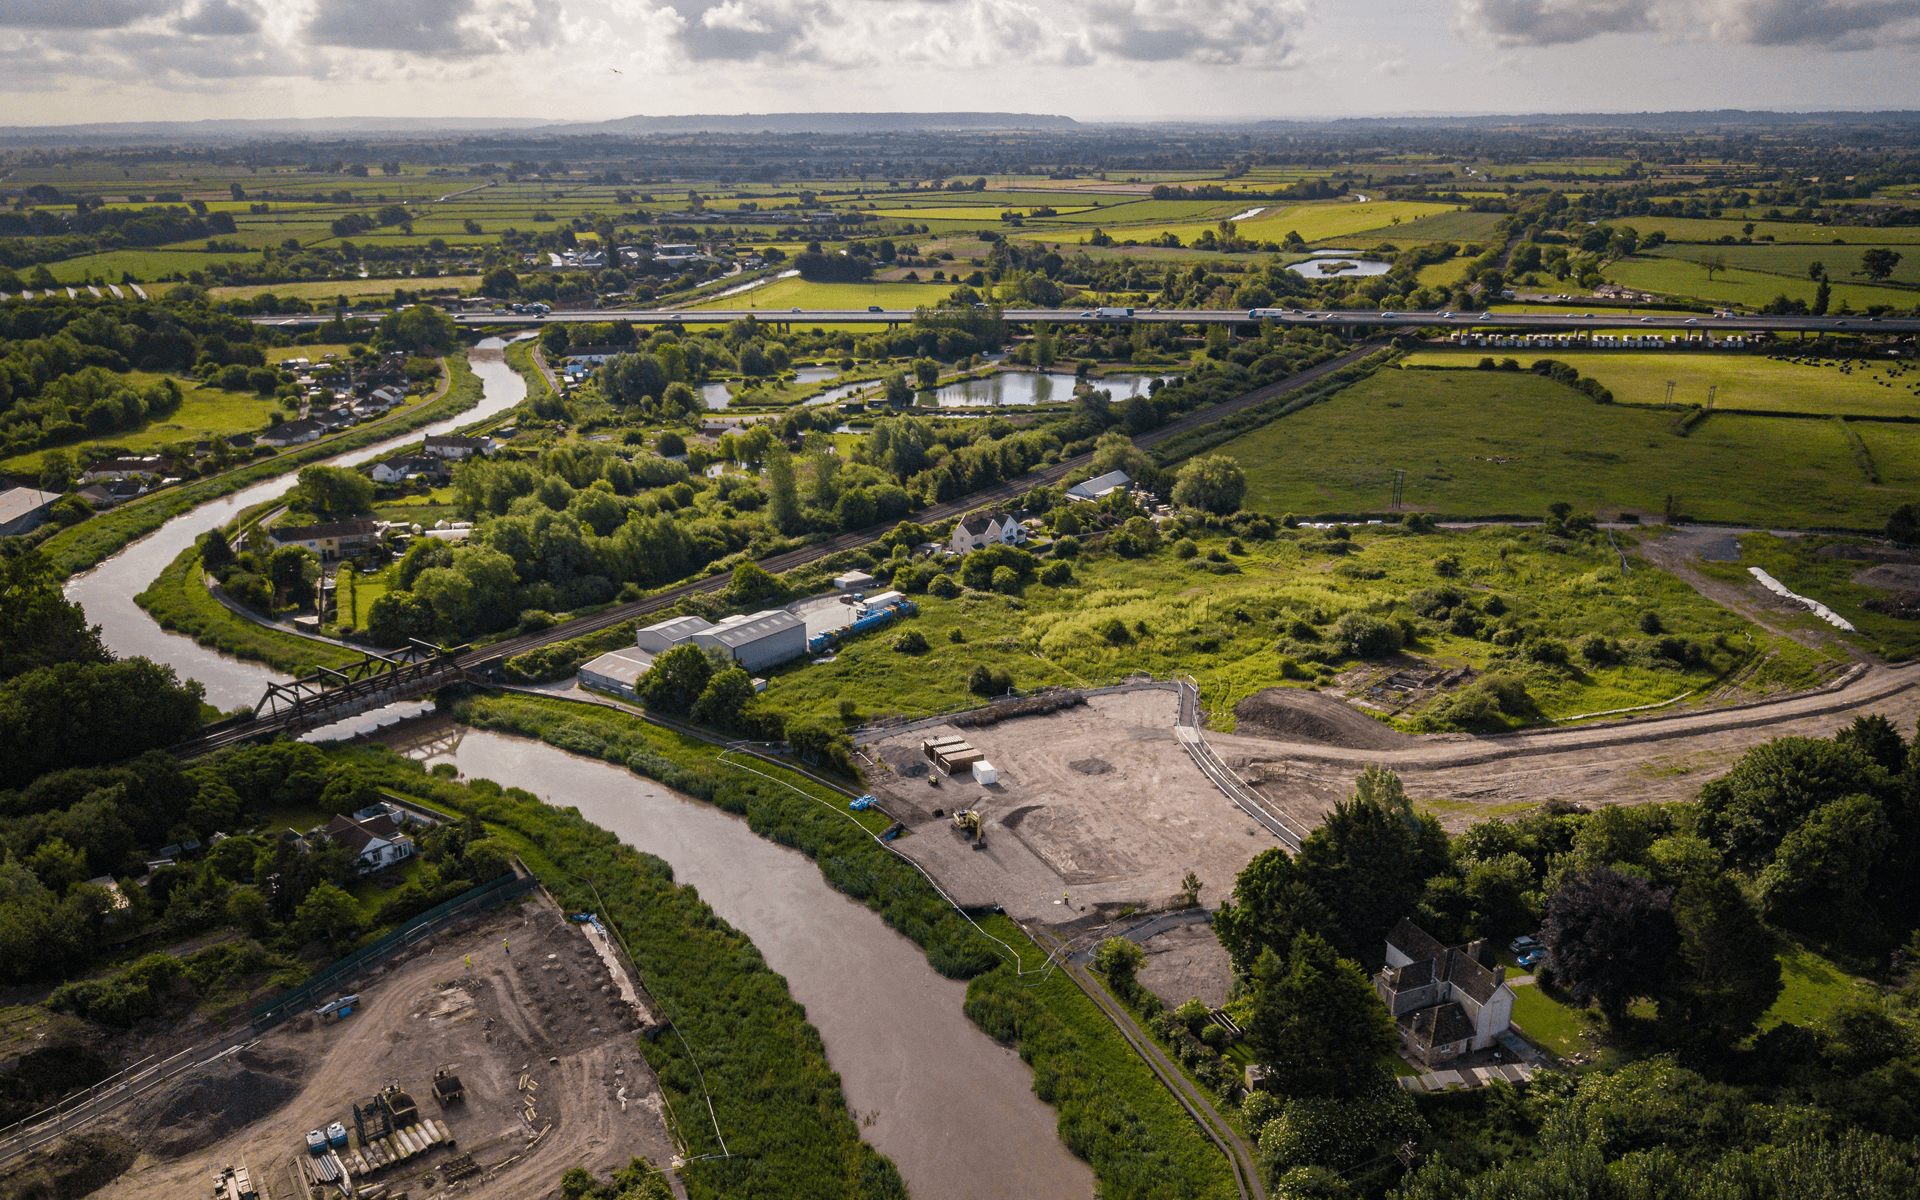 """""""Mavic 2 Pro"""" aerial drone photo of """"Whitemountain"""" building a bridge and access way in Bridgwater"""